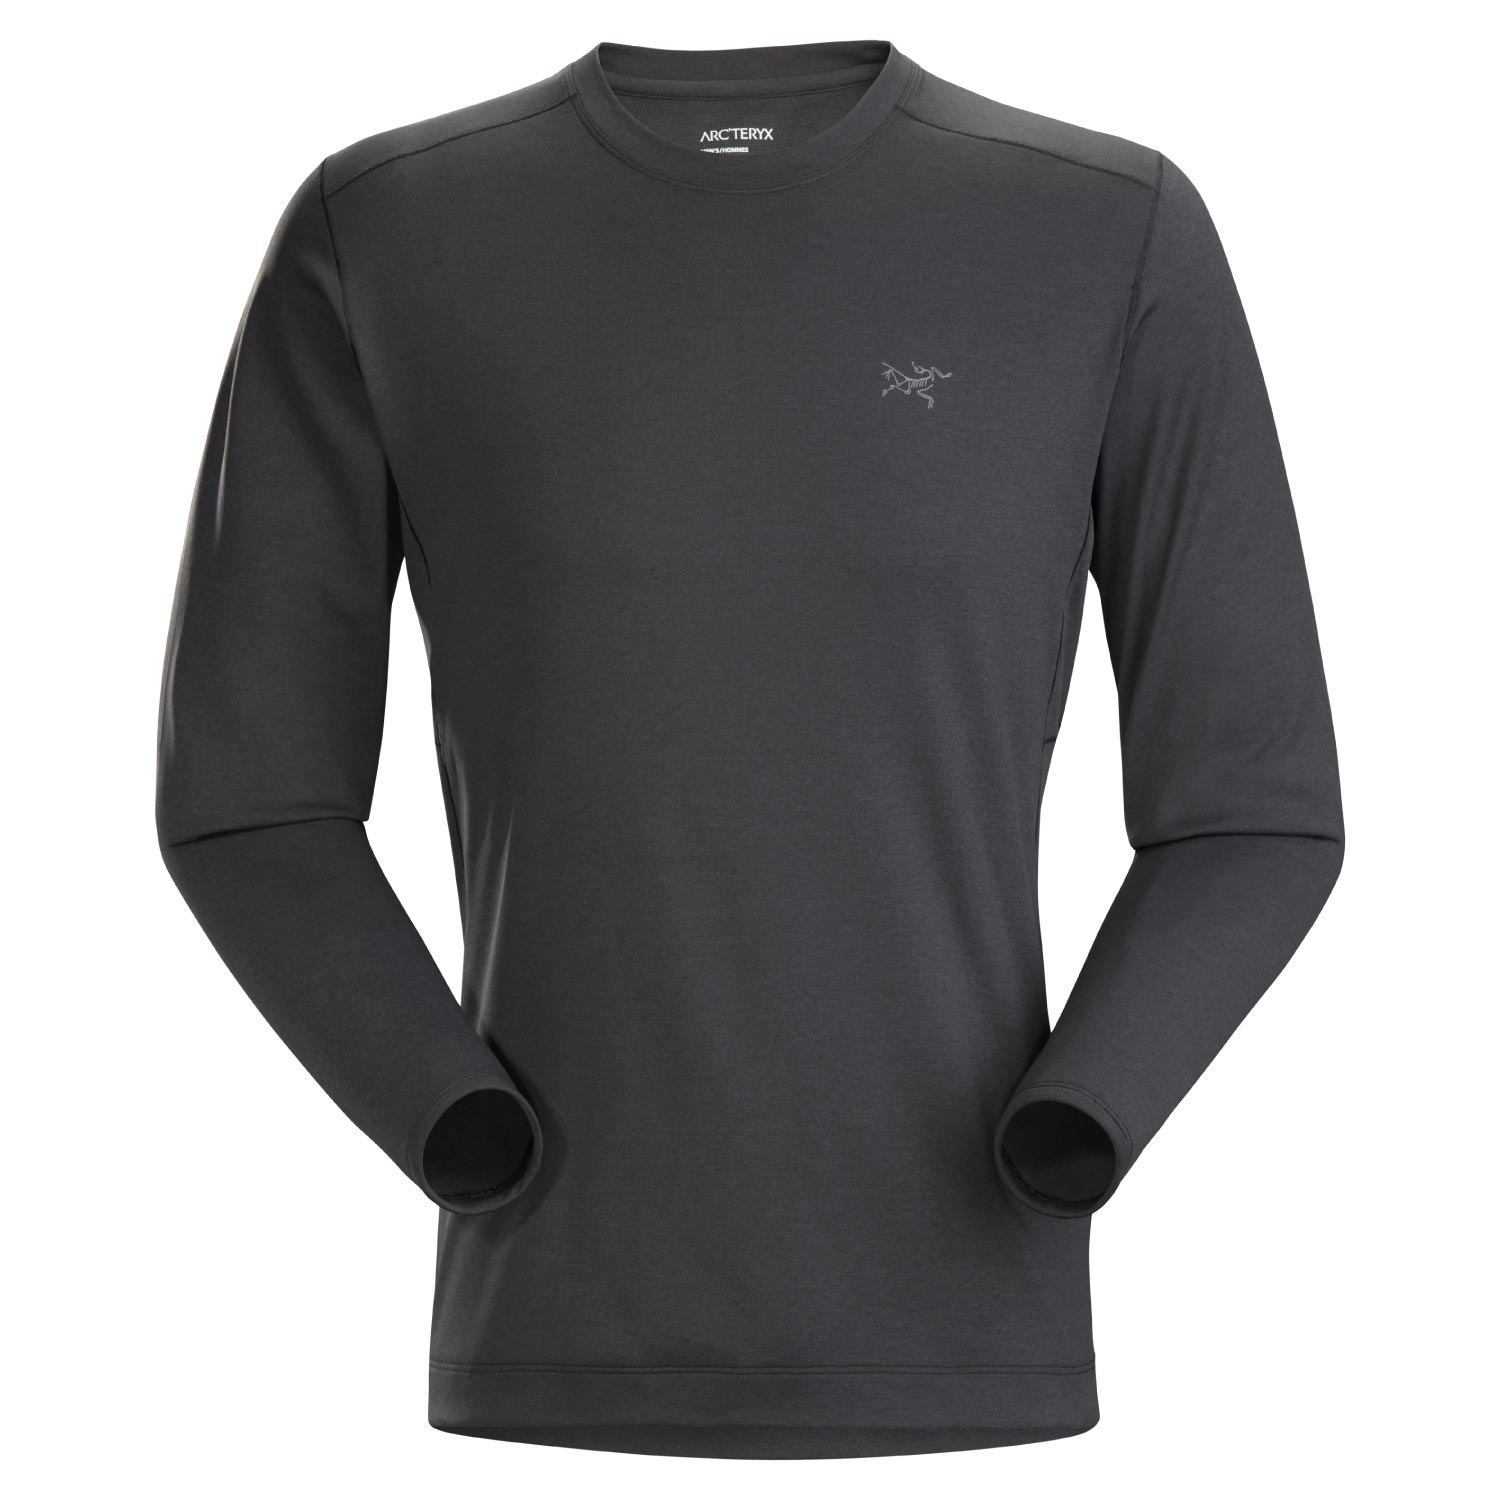 Arcteryx Motus AR Crew Long Sleeve T-Shirt Black Heather 2021